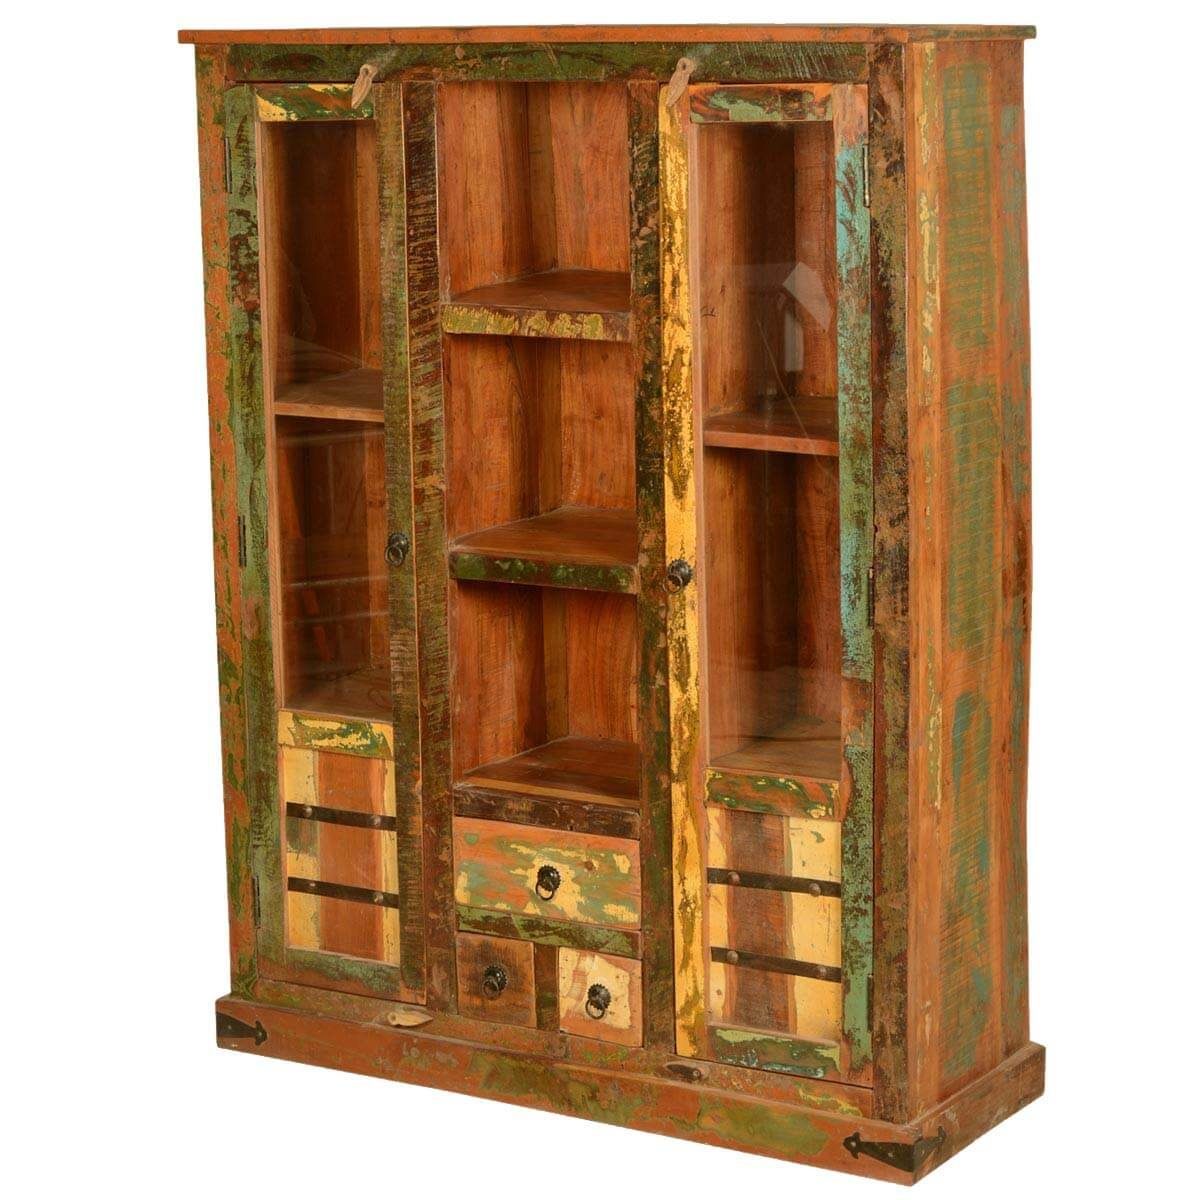 1200 #BF7B0C Speckled Rustic Reclaimed Wood Display Cabinet W Glass Doors picture/photo Wood Glass Doors 41591200